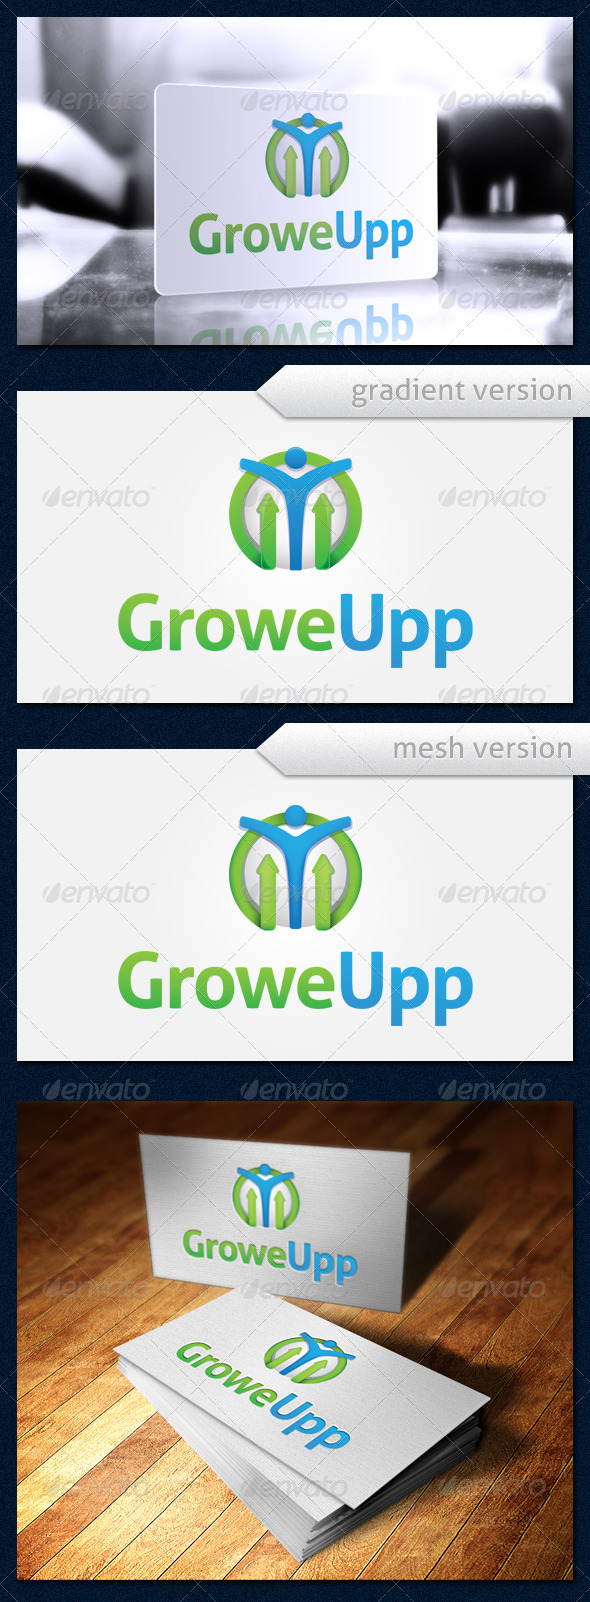 GraphicRiver GroweUpp Logo 4119377